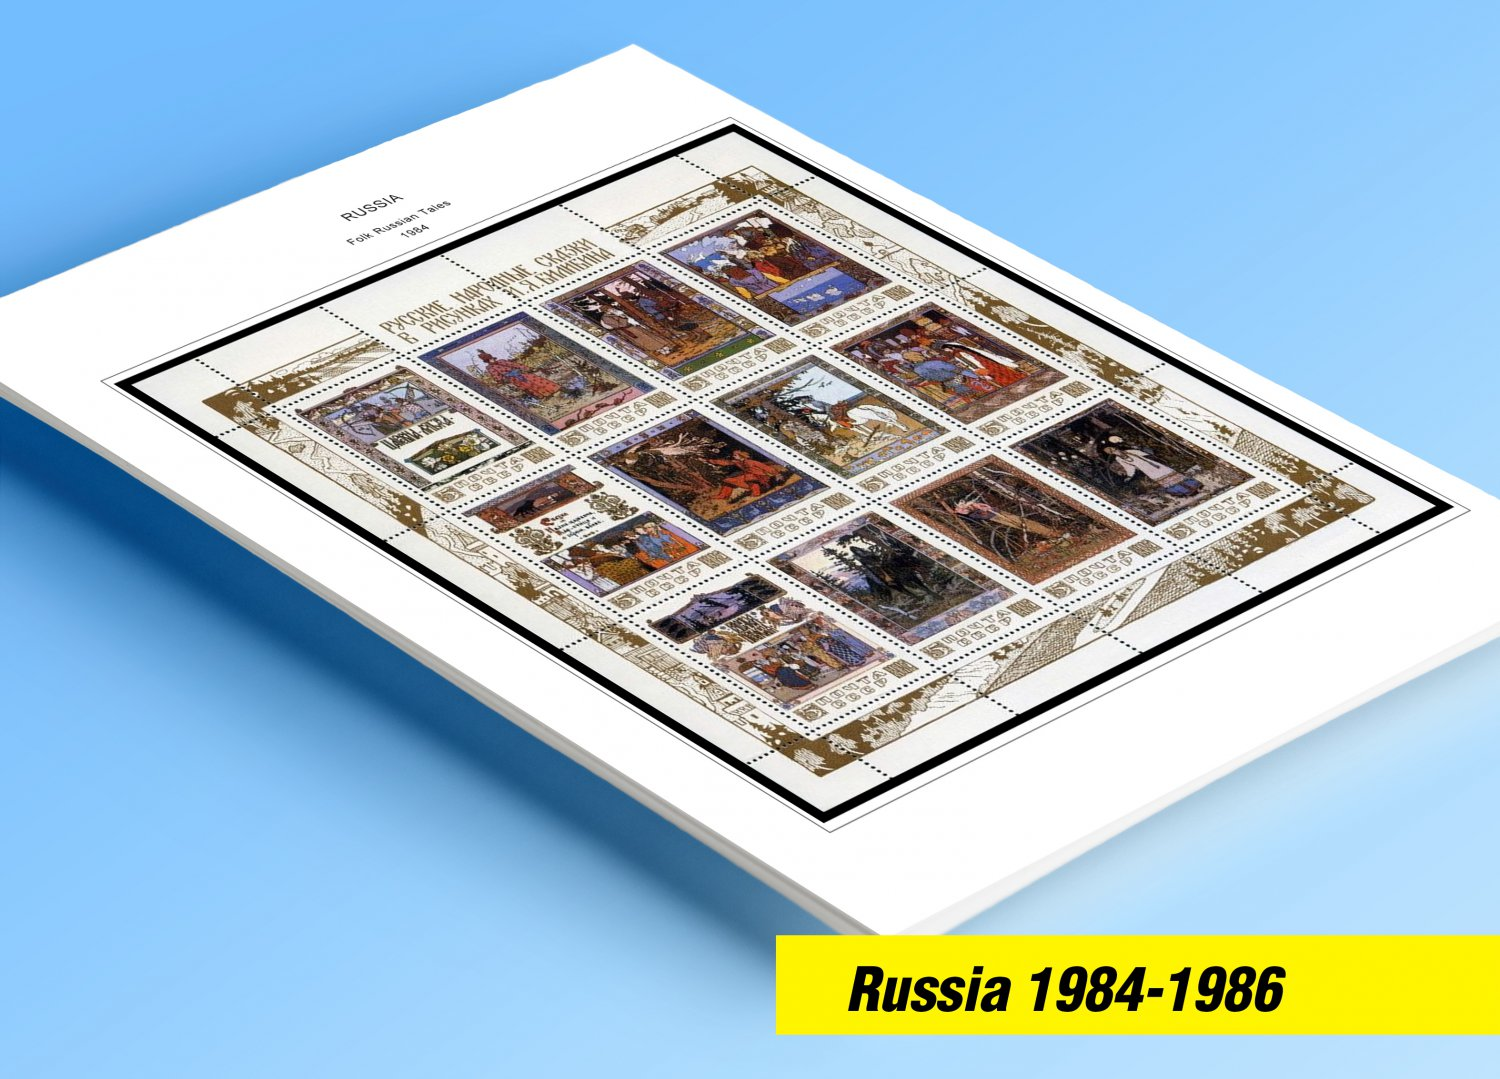 COLOR PRINTED RUSSIA 1984-1986 STAMP ALBUM PAGES (44 illustrated pages)